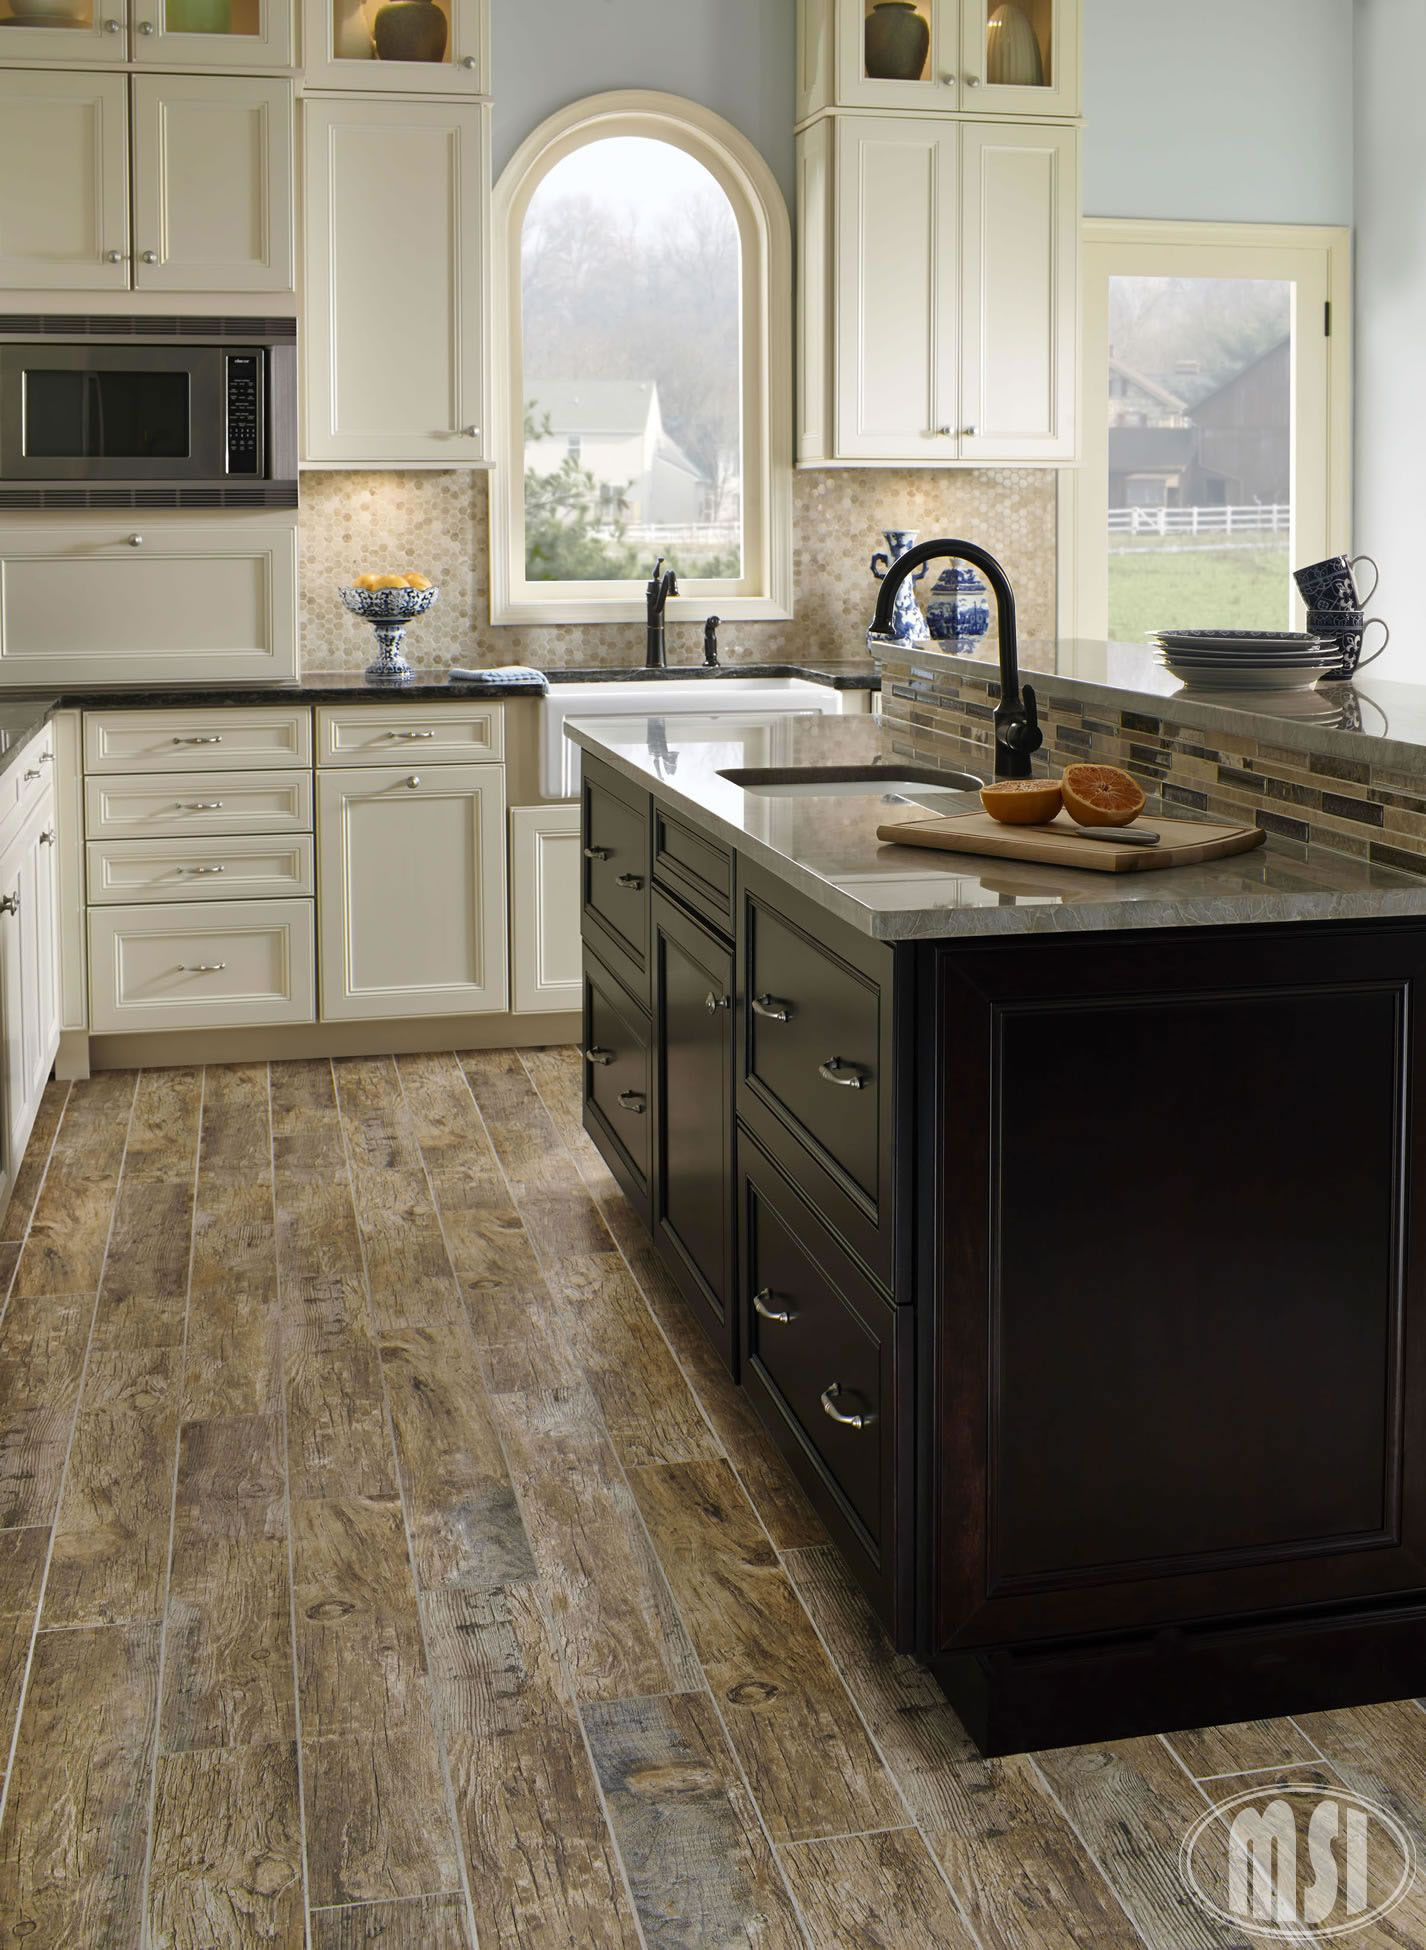 Porcelain Tile For Kitchen Floors Perfect Kitchen Floor No Need To Worry About Real Wood Floors